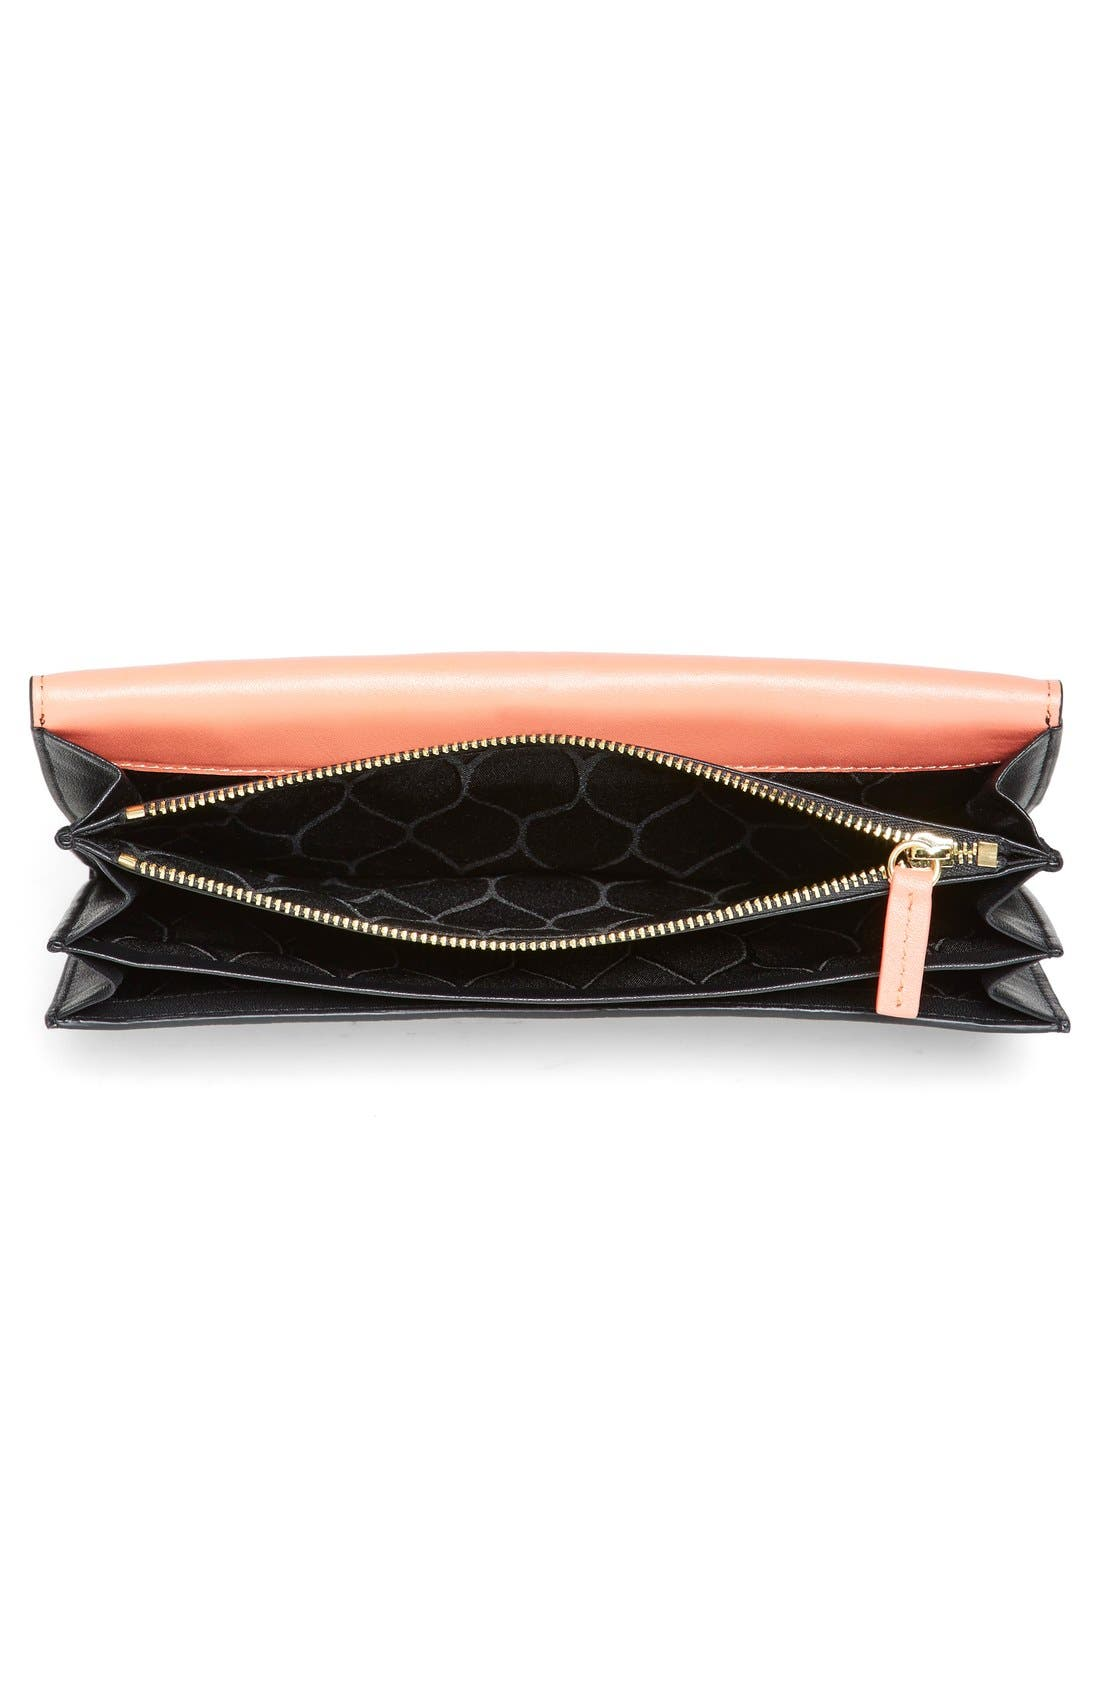 Alternate Image 3  - KENZO 'Raindrop' Leather Clutch